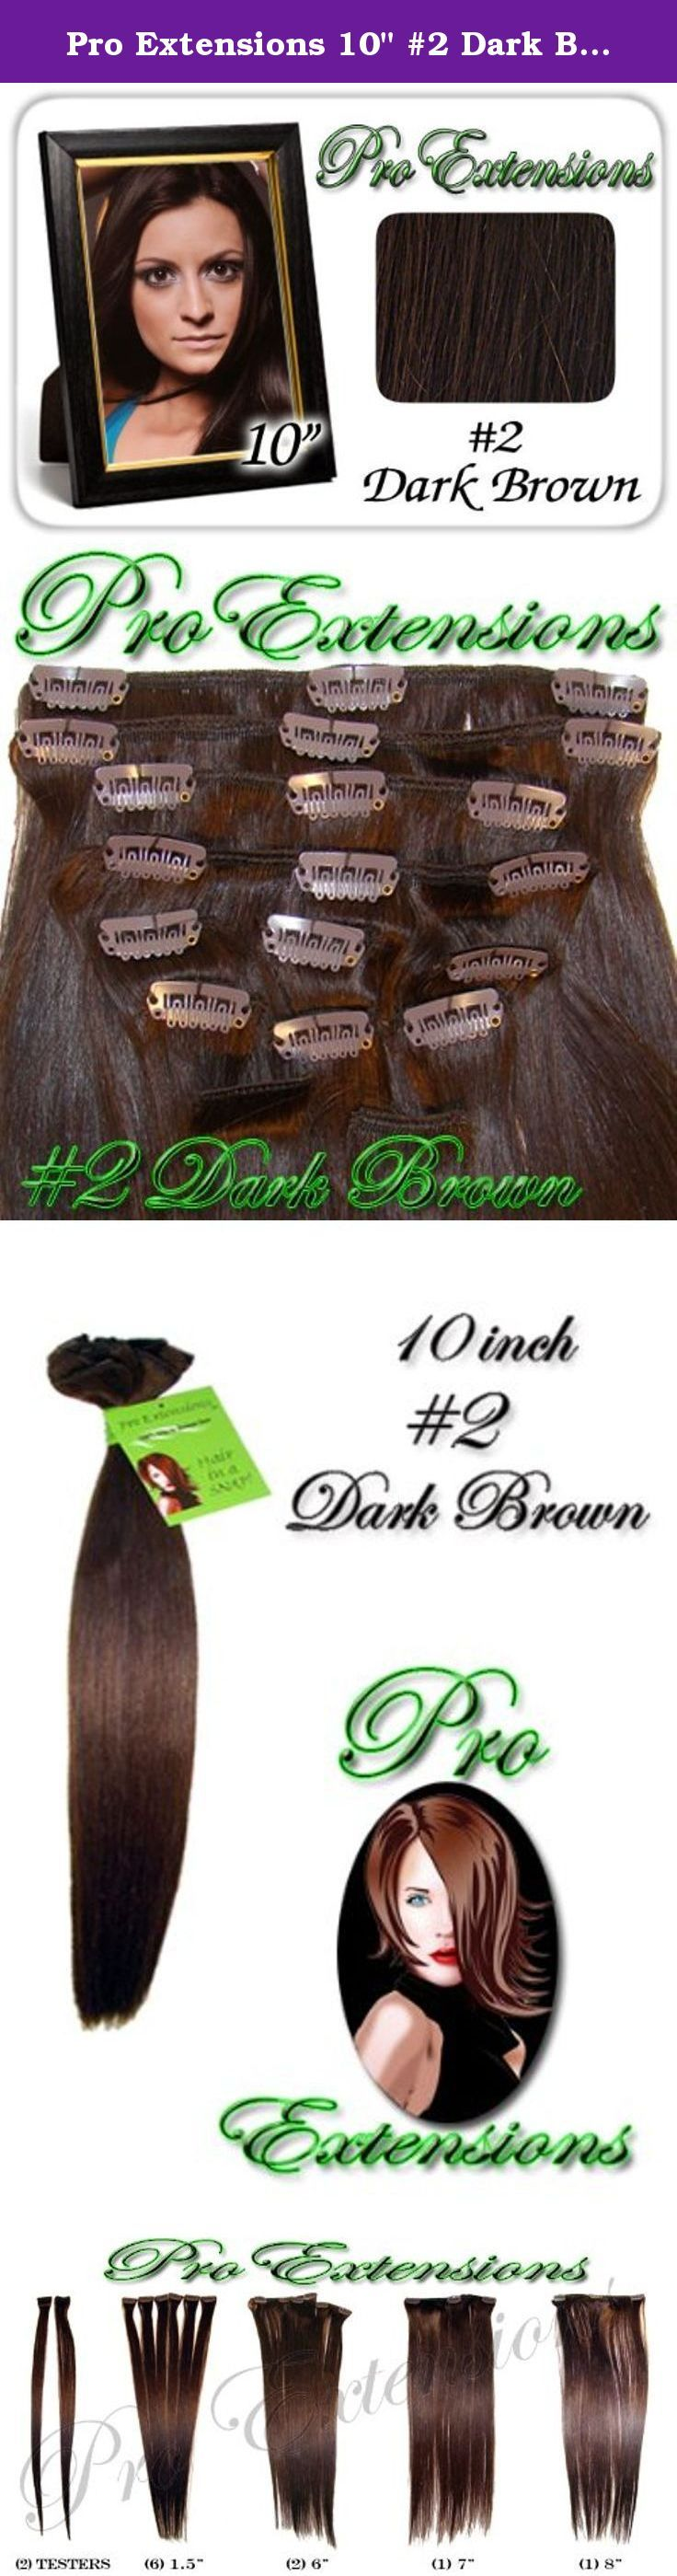 """Pro Extensions 10"""" #2 Dark Brown Clip-in Human Hair Extensions. This Pro Extensions clip in hair extension set is Colored #2, DARK BROWN. Pro Extensions are 100% human hair extensions. This set of hair extensions is 10"""" long and 39"""" wide. This hair extensions set is Grade A, Color #2, DARK BROWN. The set weight is 50 grams. This set of extensions is straight without any body wave. Pro Extensions Volumizer is specialized to add volume or texture to your current hair style. The extensions…"""